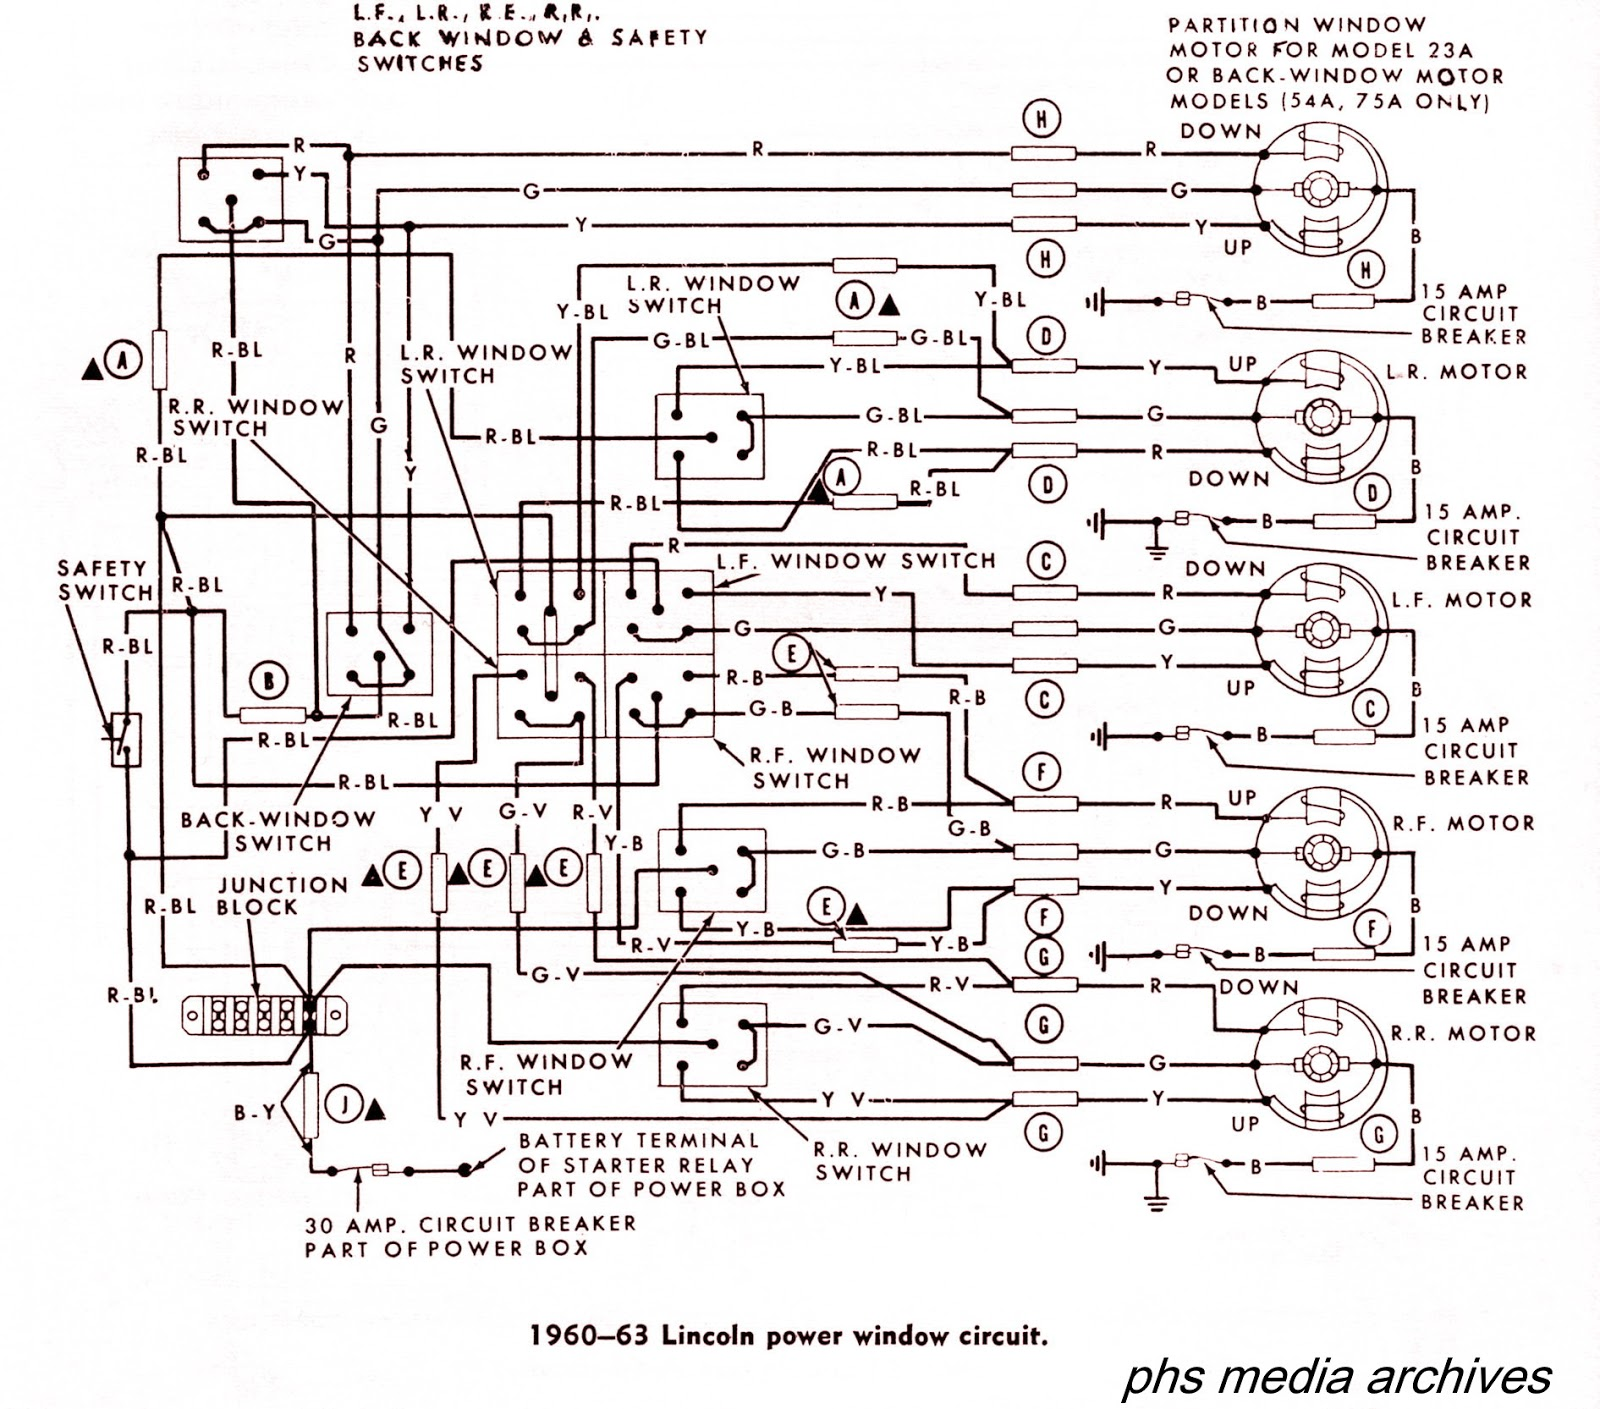 medium resolution of tech series 1960 1964 lincoln wiring diagrams phscollectorcarworld lincoln mark 8 wiring diagram lincoln wiring diagrams